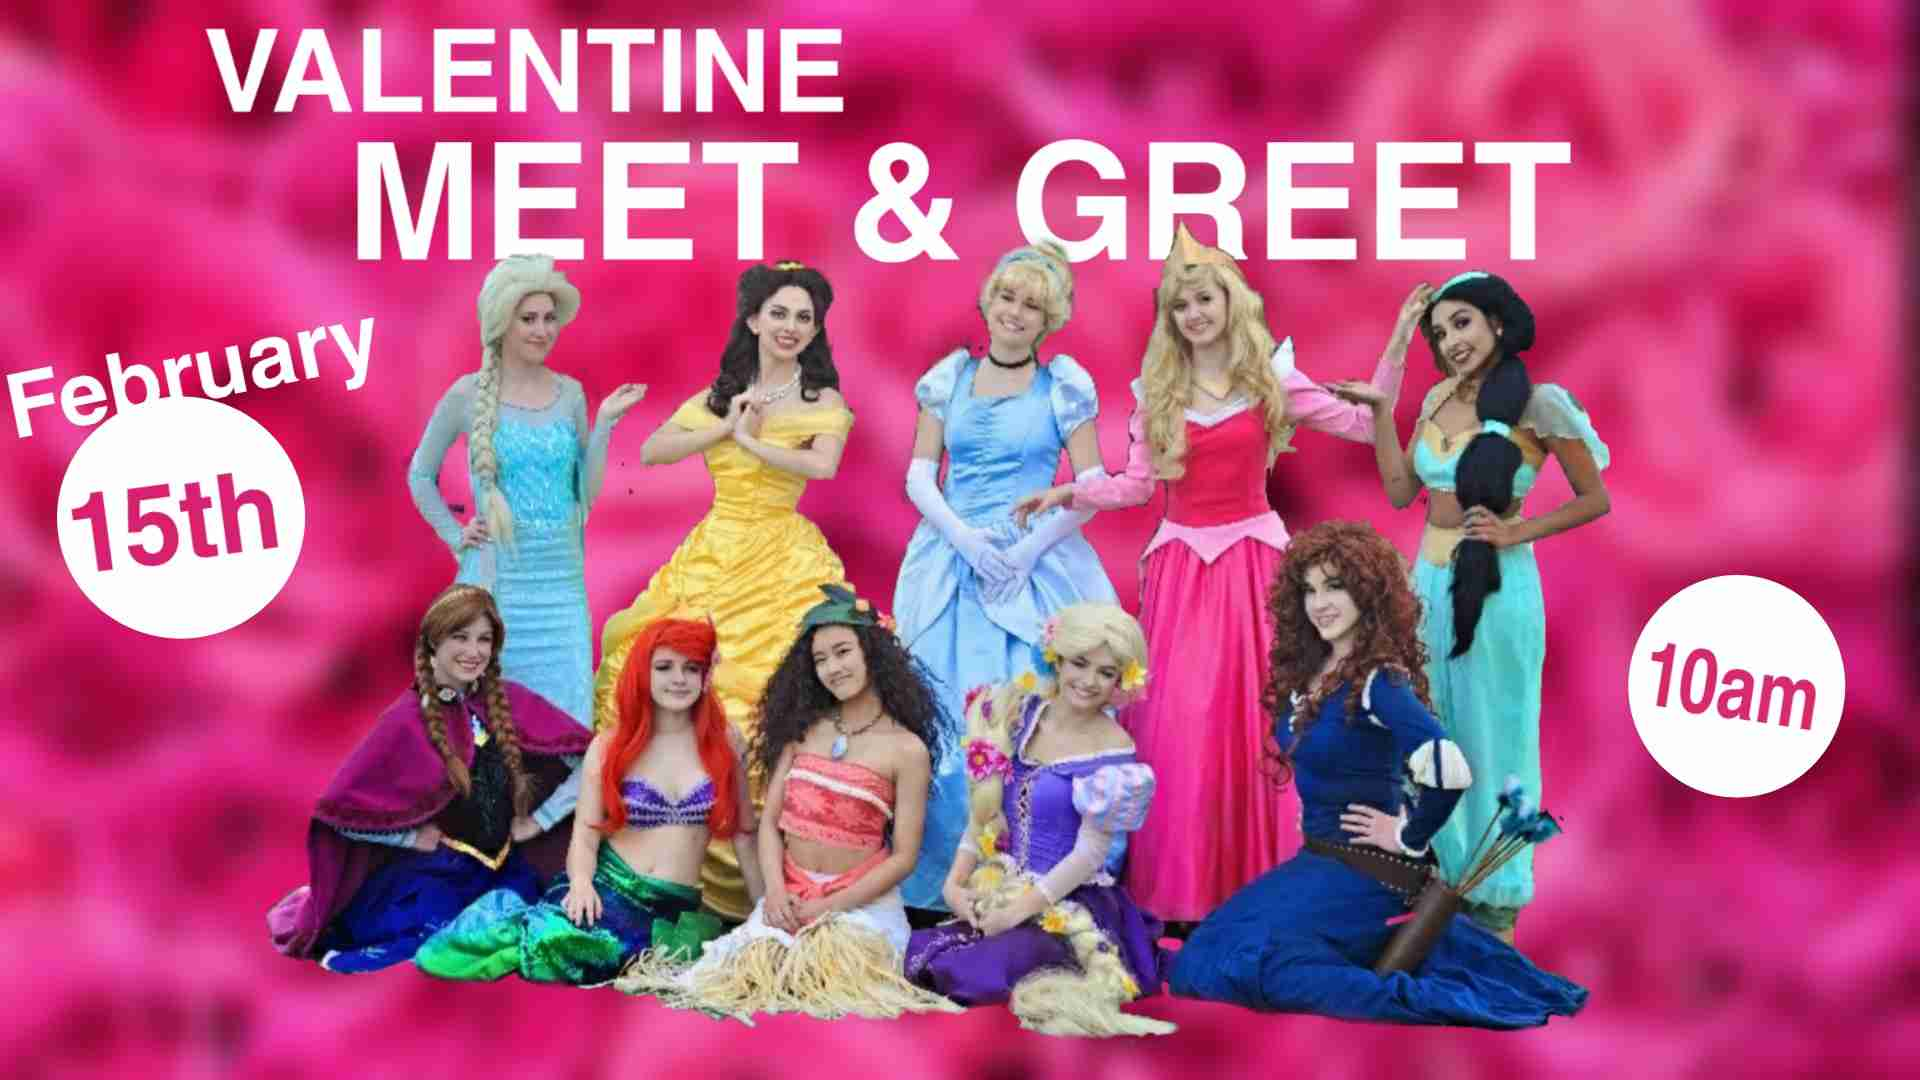 Valentine Meet & Greet